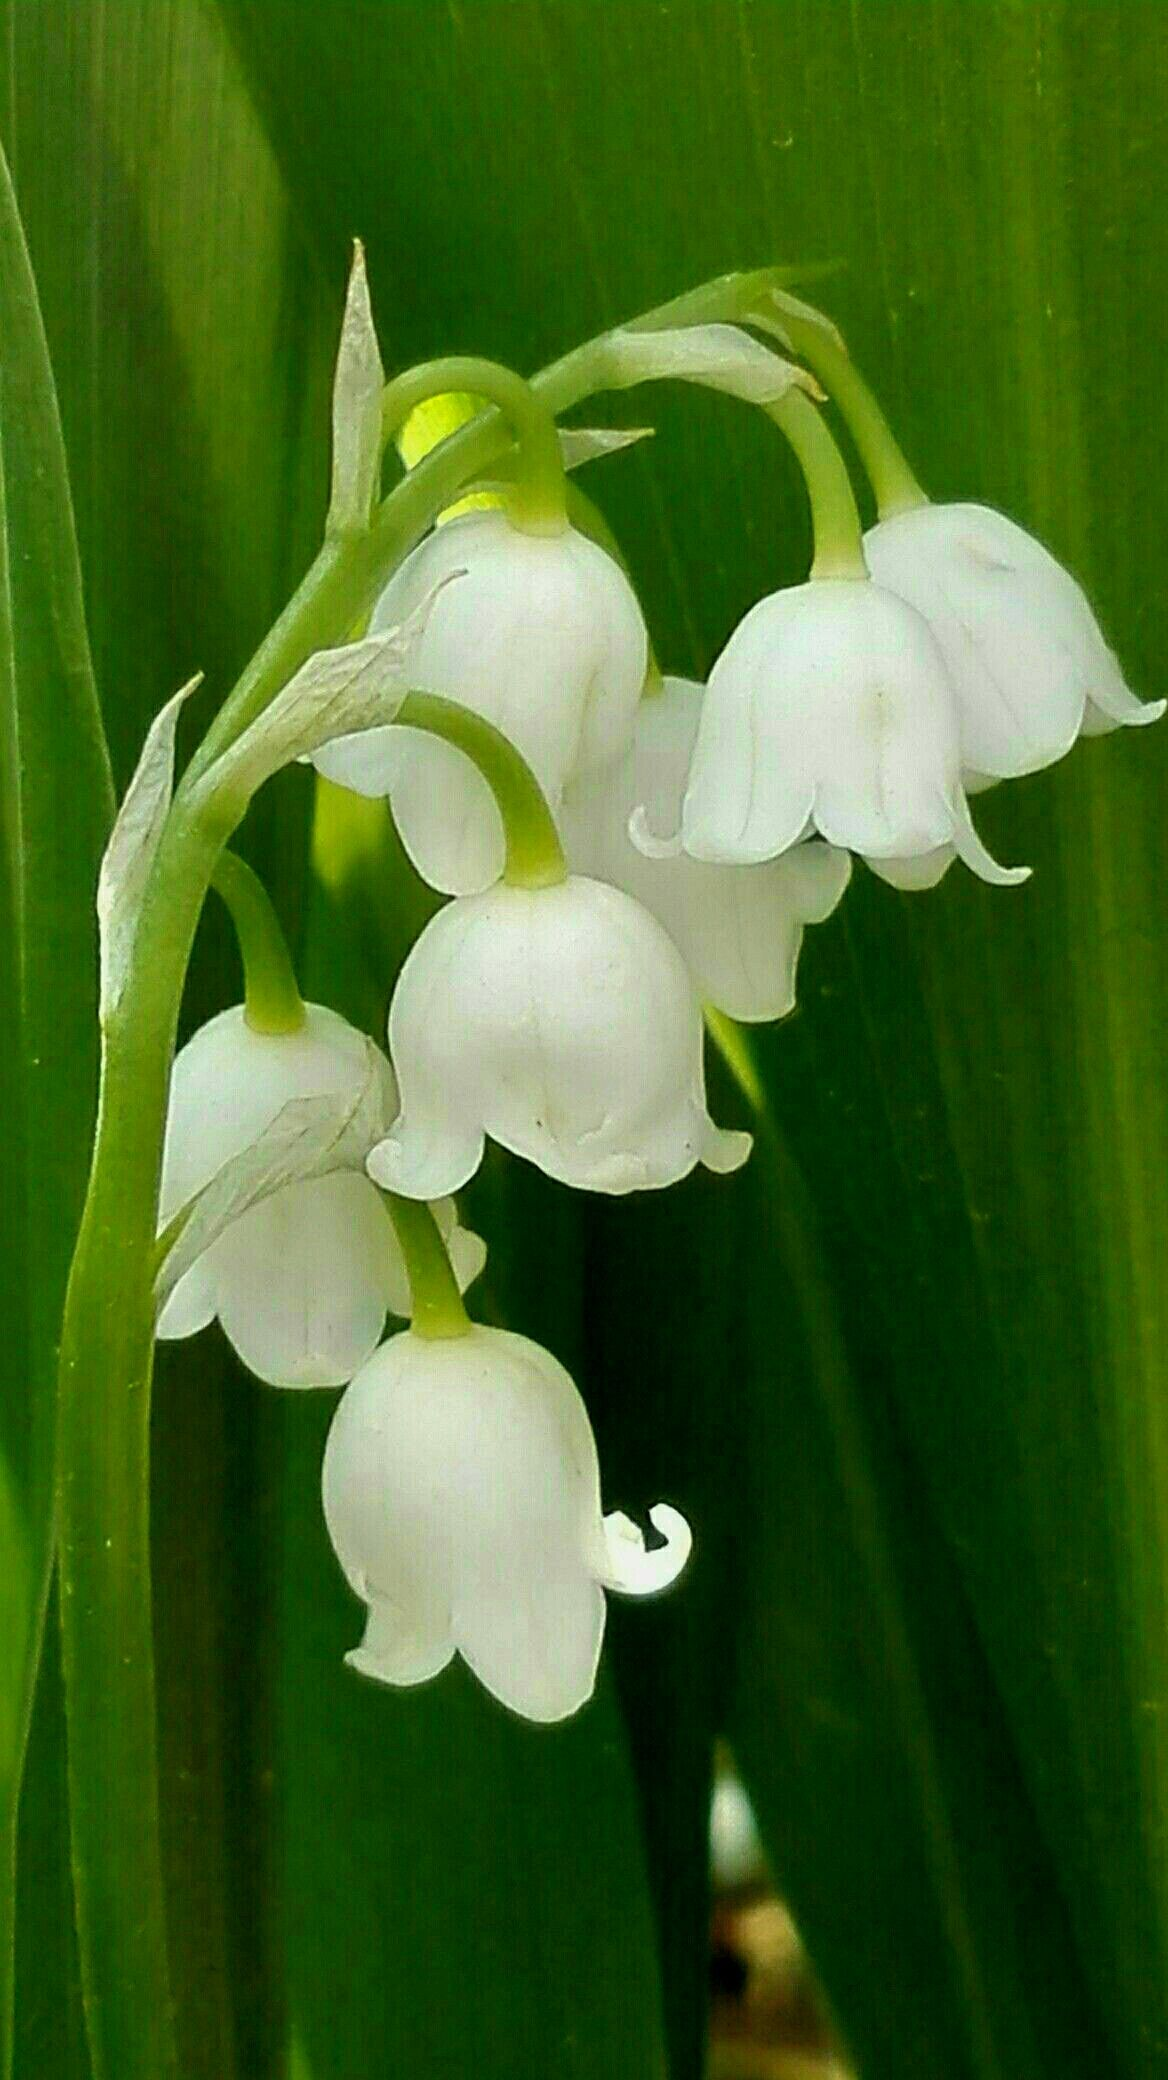 Lily of the valley szp virgok pinterest flowers beautiful white flowers are beautiful and with meanings of their ownrennial flower types of white flowers and name list of white flowers plants izmirmasajfo